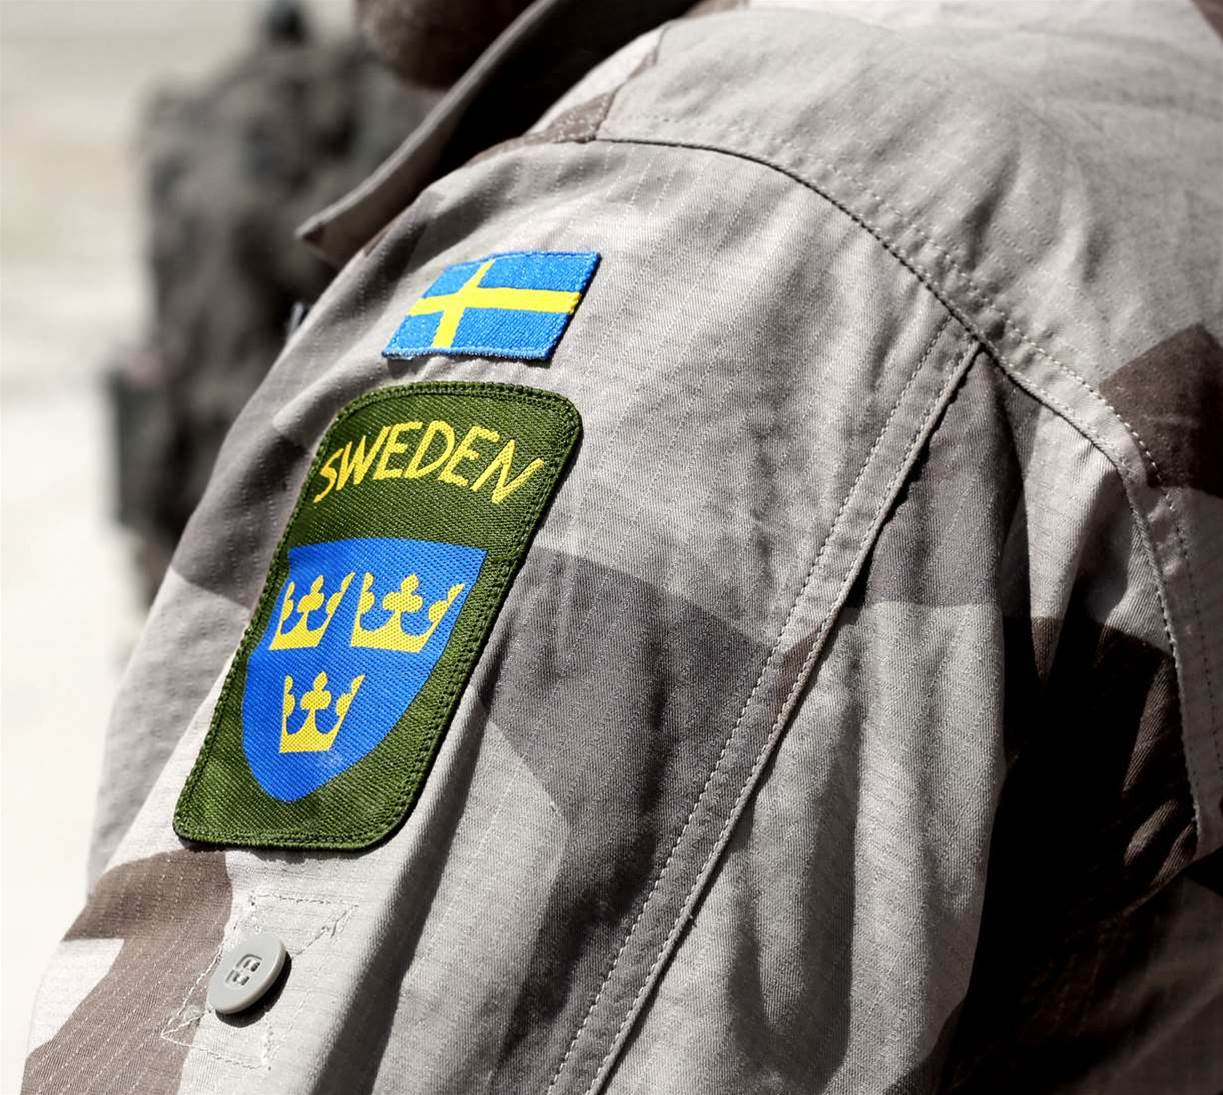 Sweden pulls 700 MHz auction over security concerns